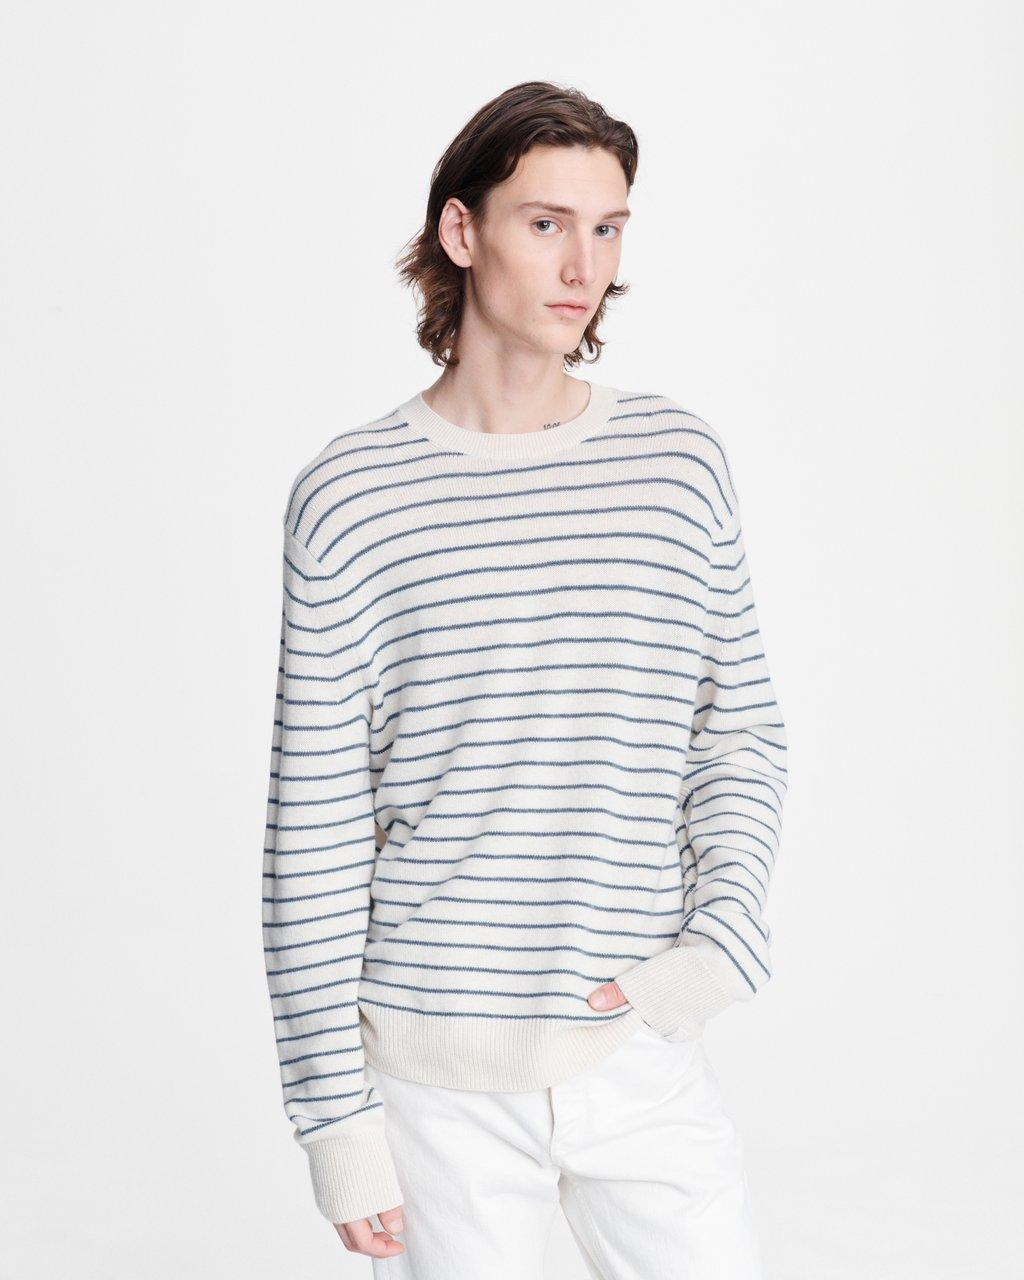 HARLOW STRIPED CREW